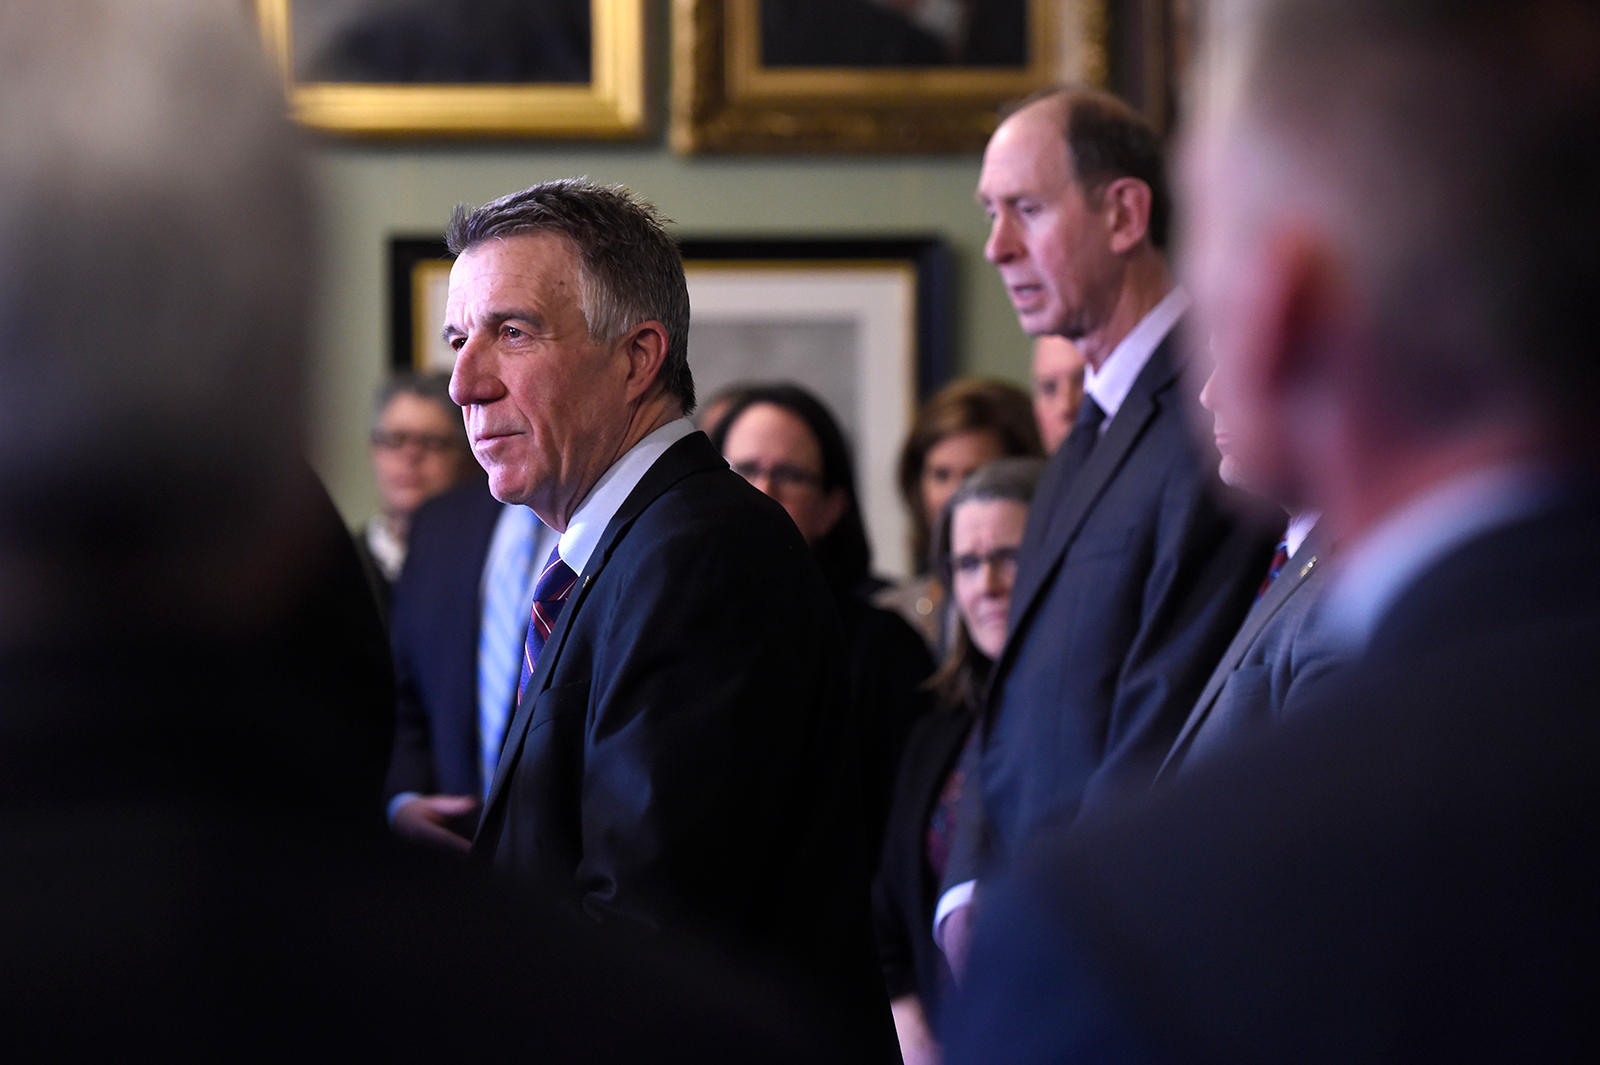 Vermont Gov. Phil Scott speaks during a press conference in Montpelier, Vermont on March 13.